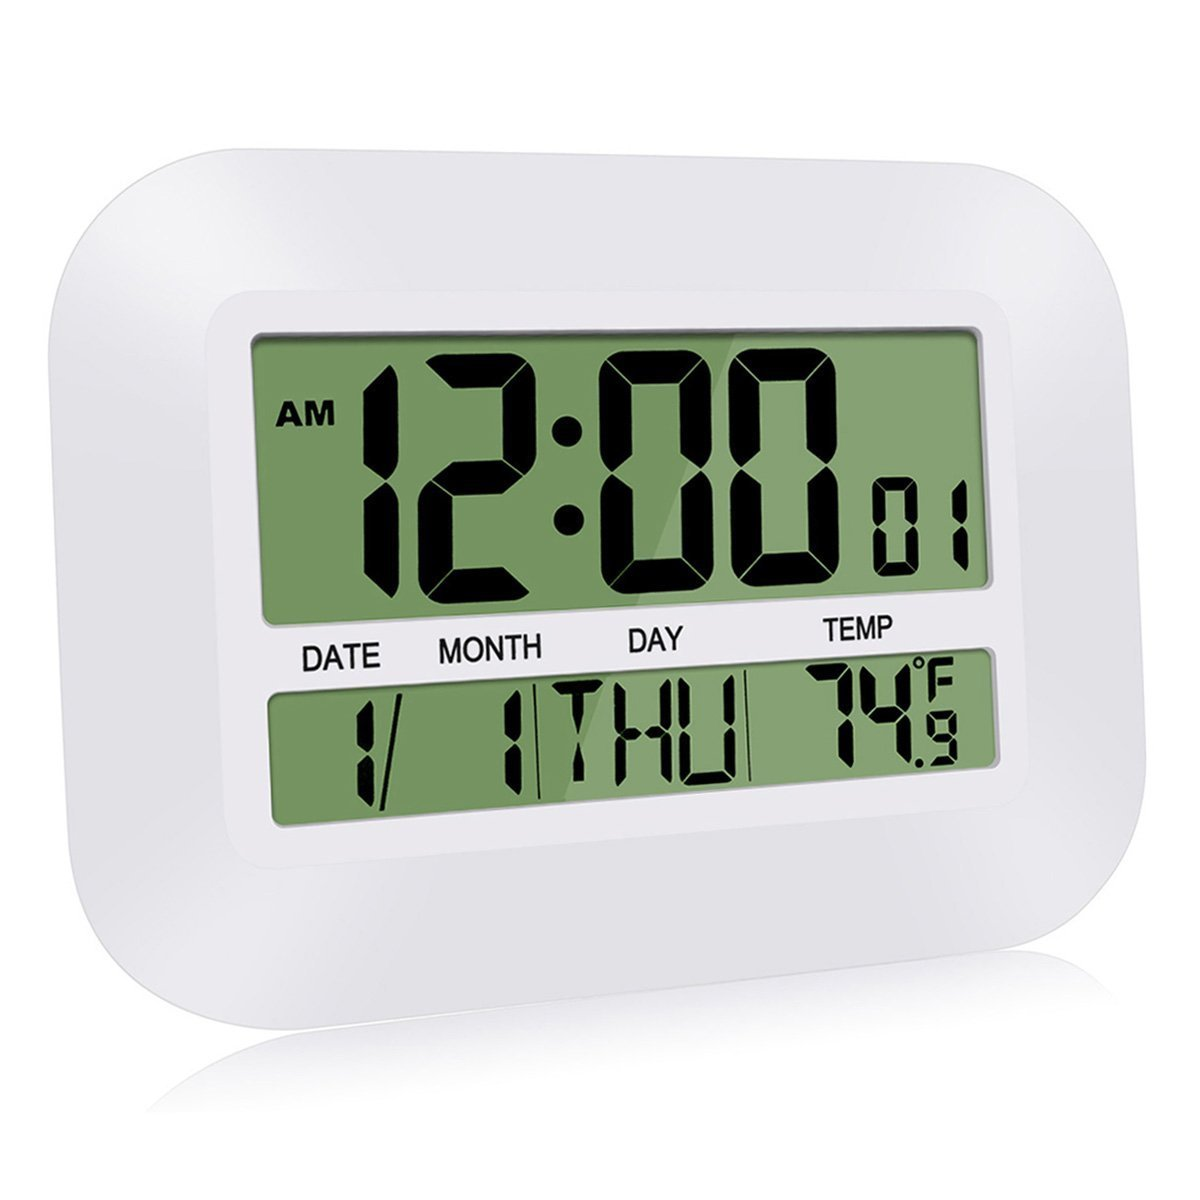 HeQiao Silent Desk Clocks, 12 Inch Digital Wall Clock Battery Operated Simple Large LCD Alarm Clock w/Temperature Calendar Date Day for Home Office (Ivory White)